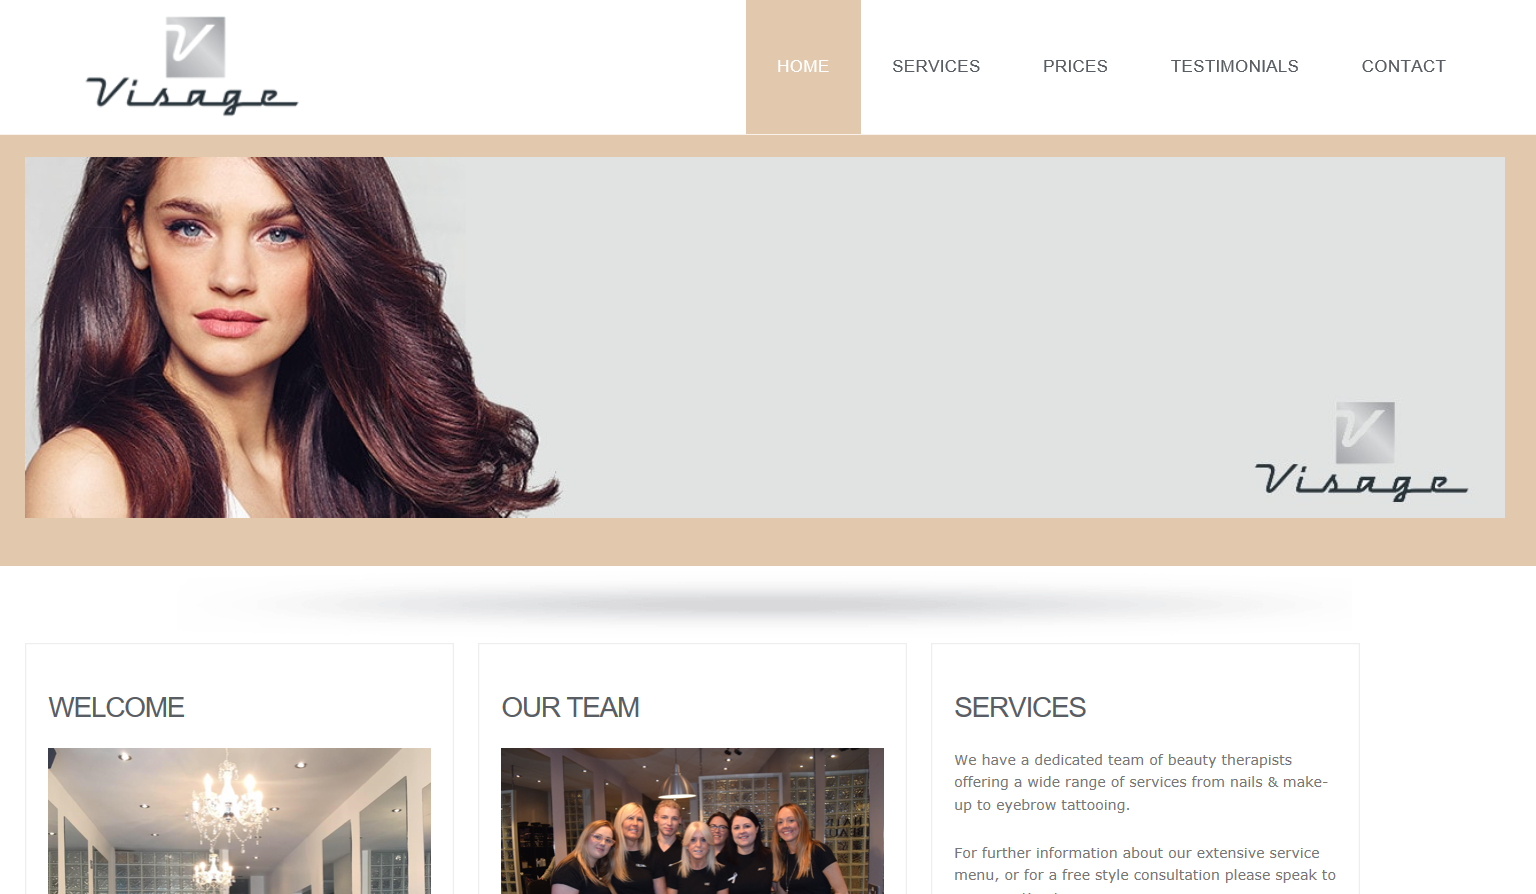 Visage hair and beauty website